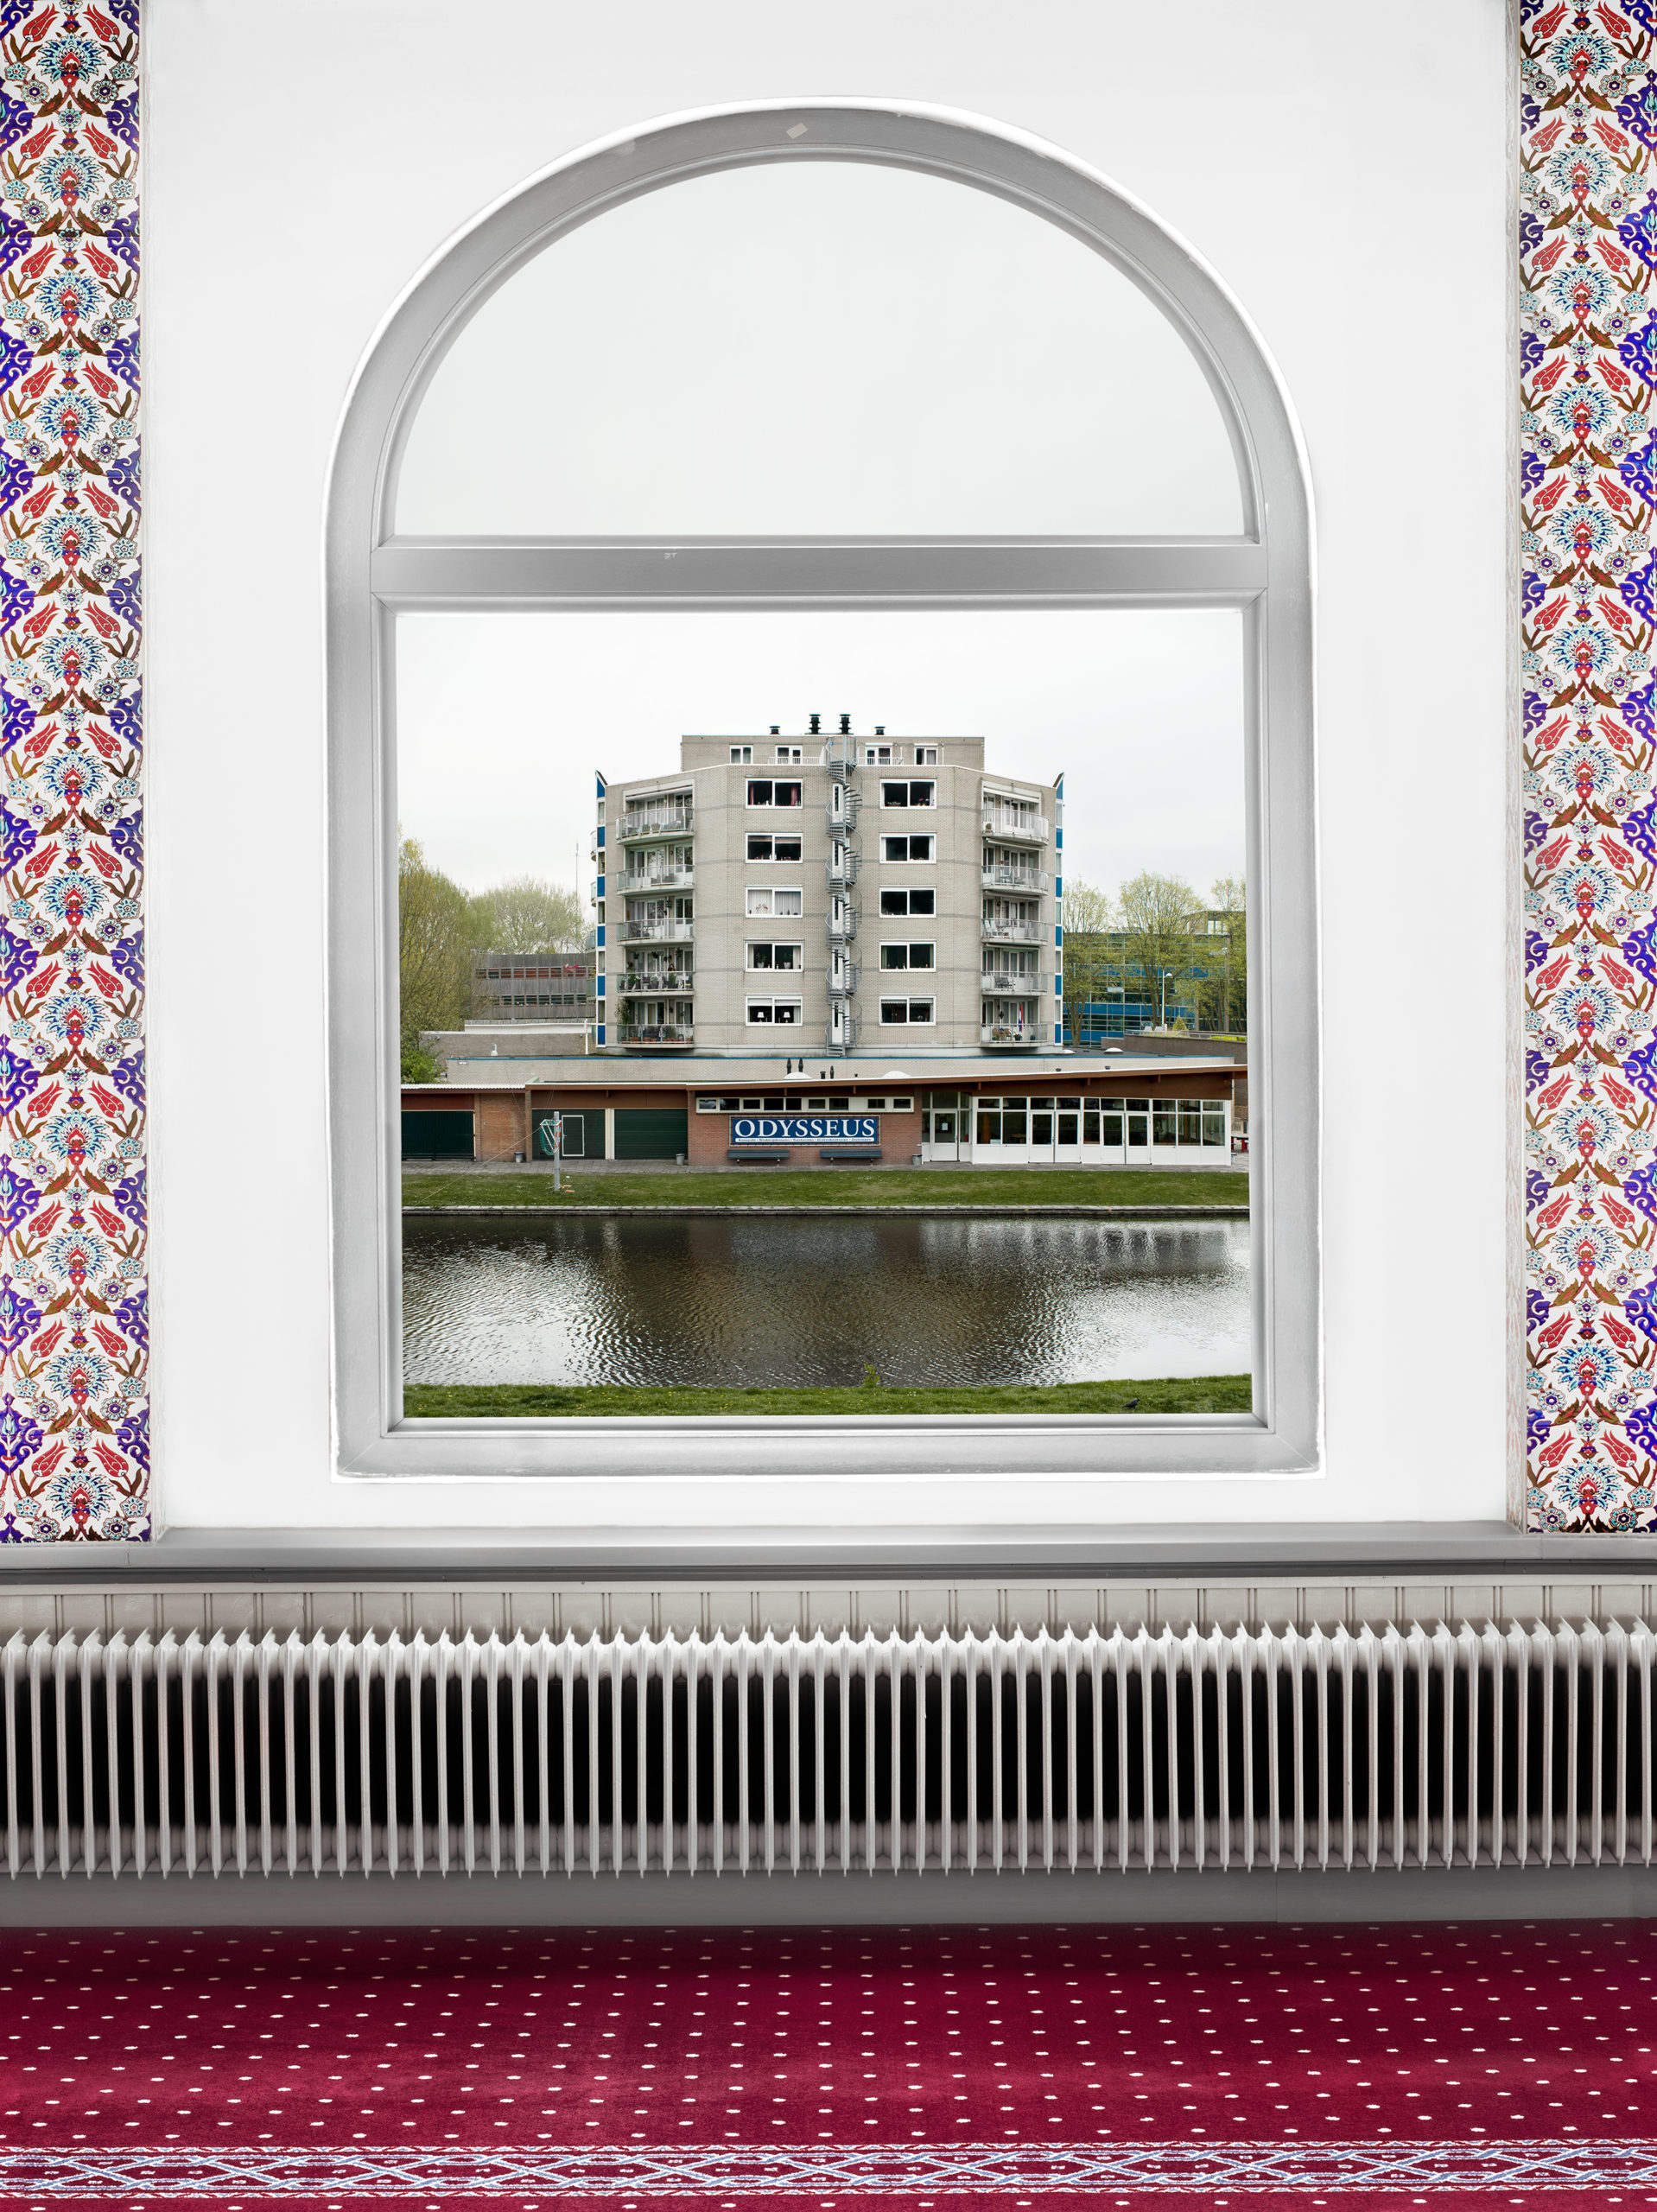 'New Dutch Views#3', The Netherlands, 2018. From the series New Dutch Views, 2018-2019. ©Marwan Bassiouni, Courtesy of Galerie Ron Mandos- Amsterdam.